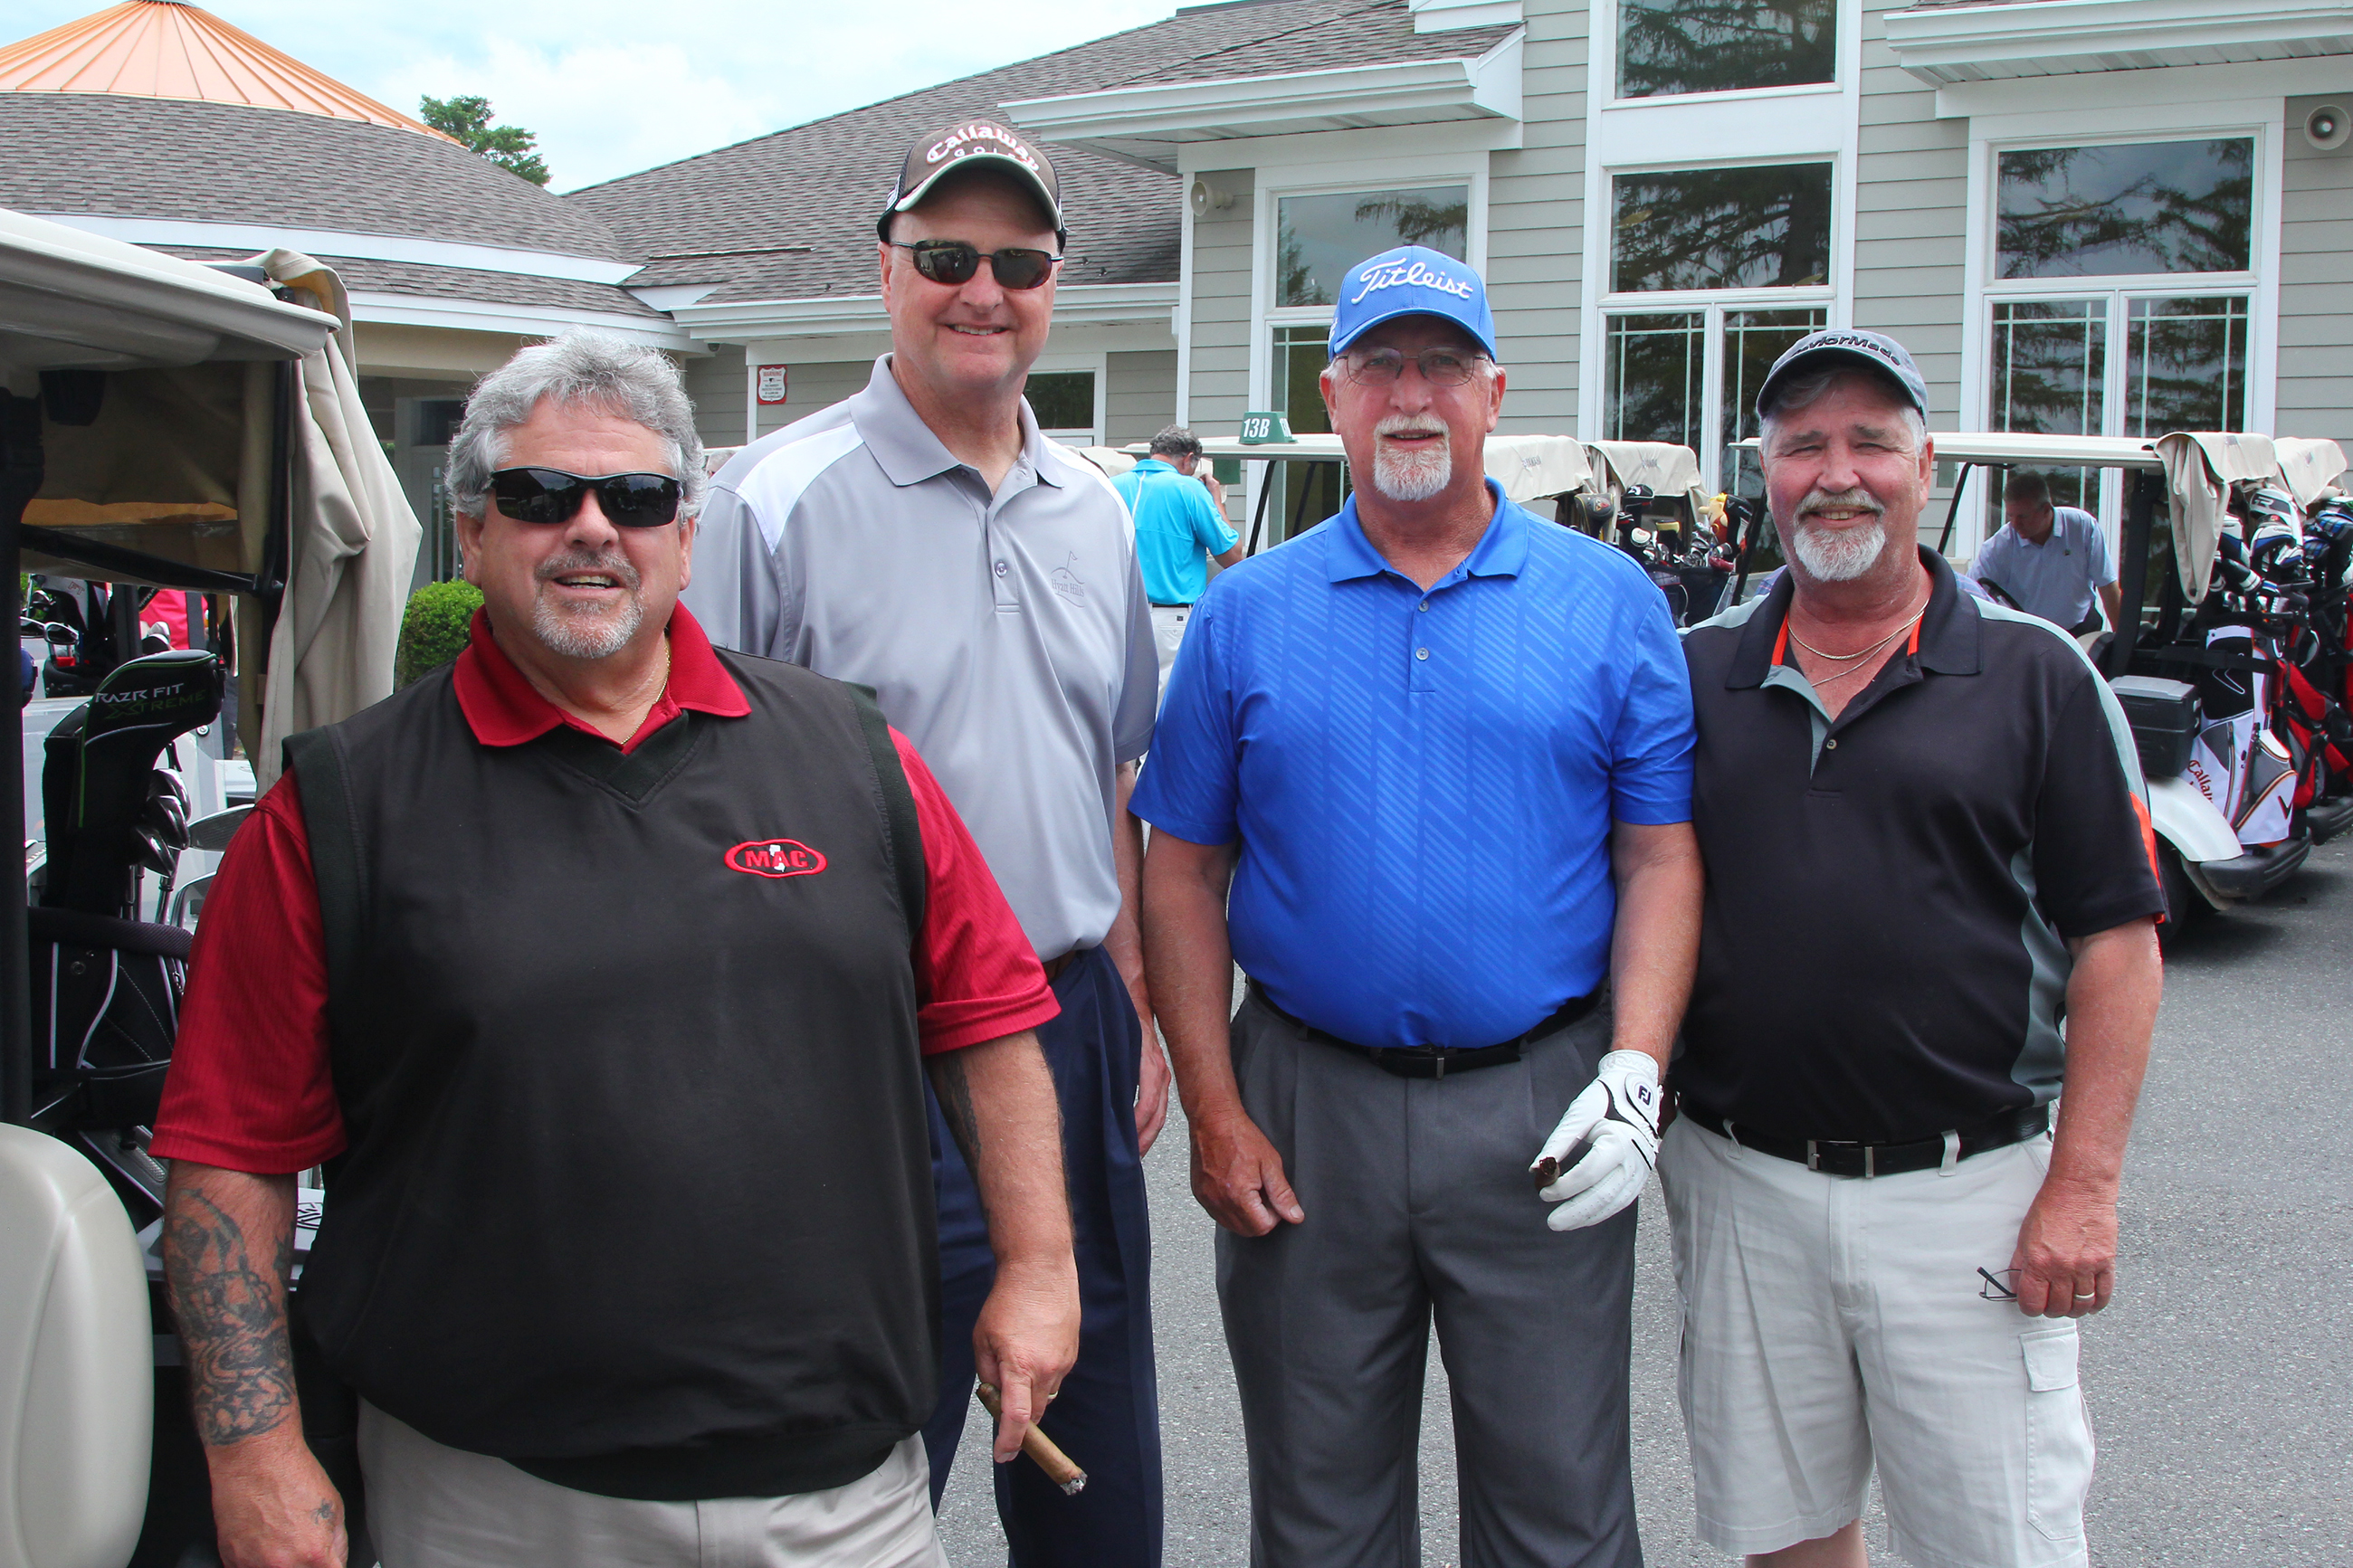 Wayne P. DeAngelo Golf Outing, May 24, 2017, Mountain View Golf Club. Insulators Local 32 ( North Jersey) L-R, Mike Schneider, John Dwyer, Ray Eilbach and Bob Kuebler.